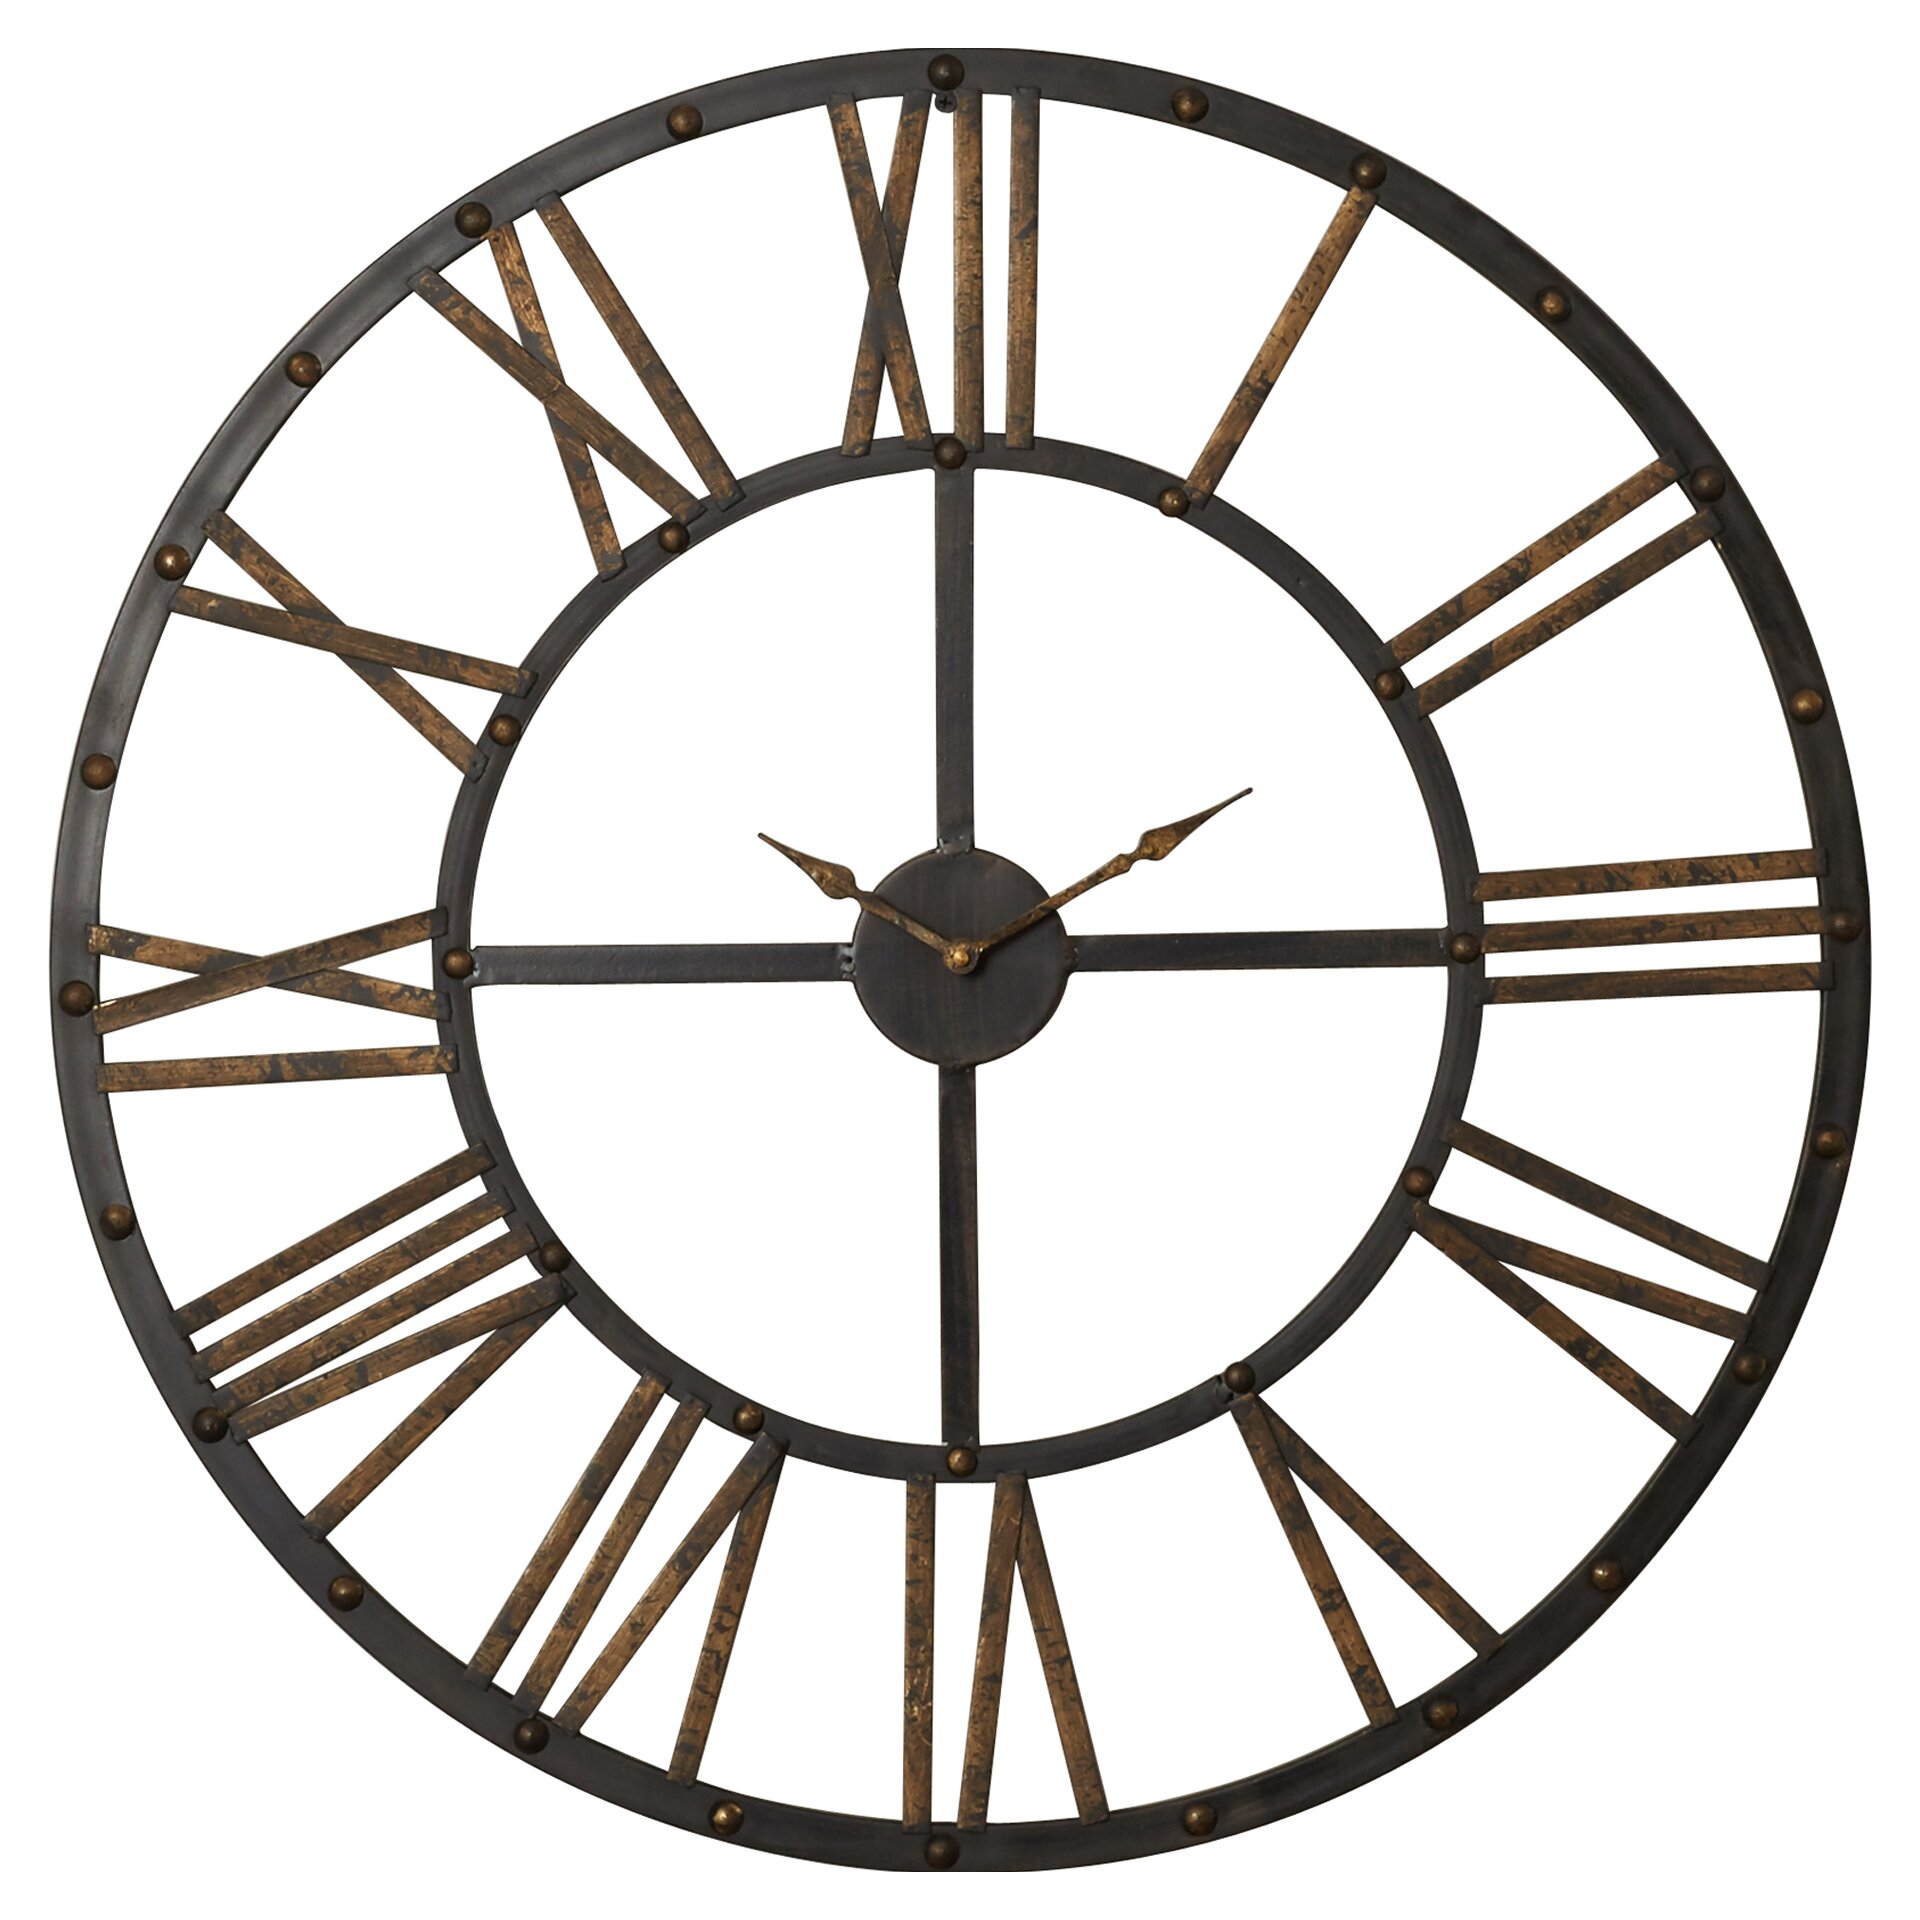 Exeter Round Oversized Wall Clock & Reviews | Joss & Main